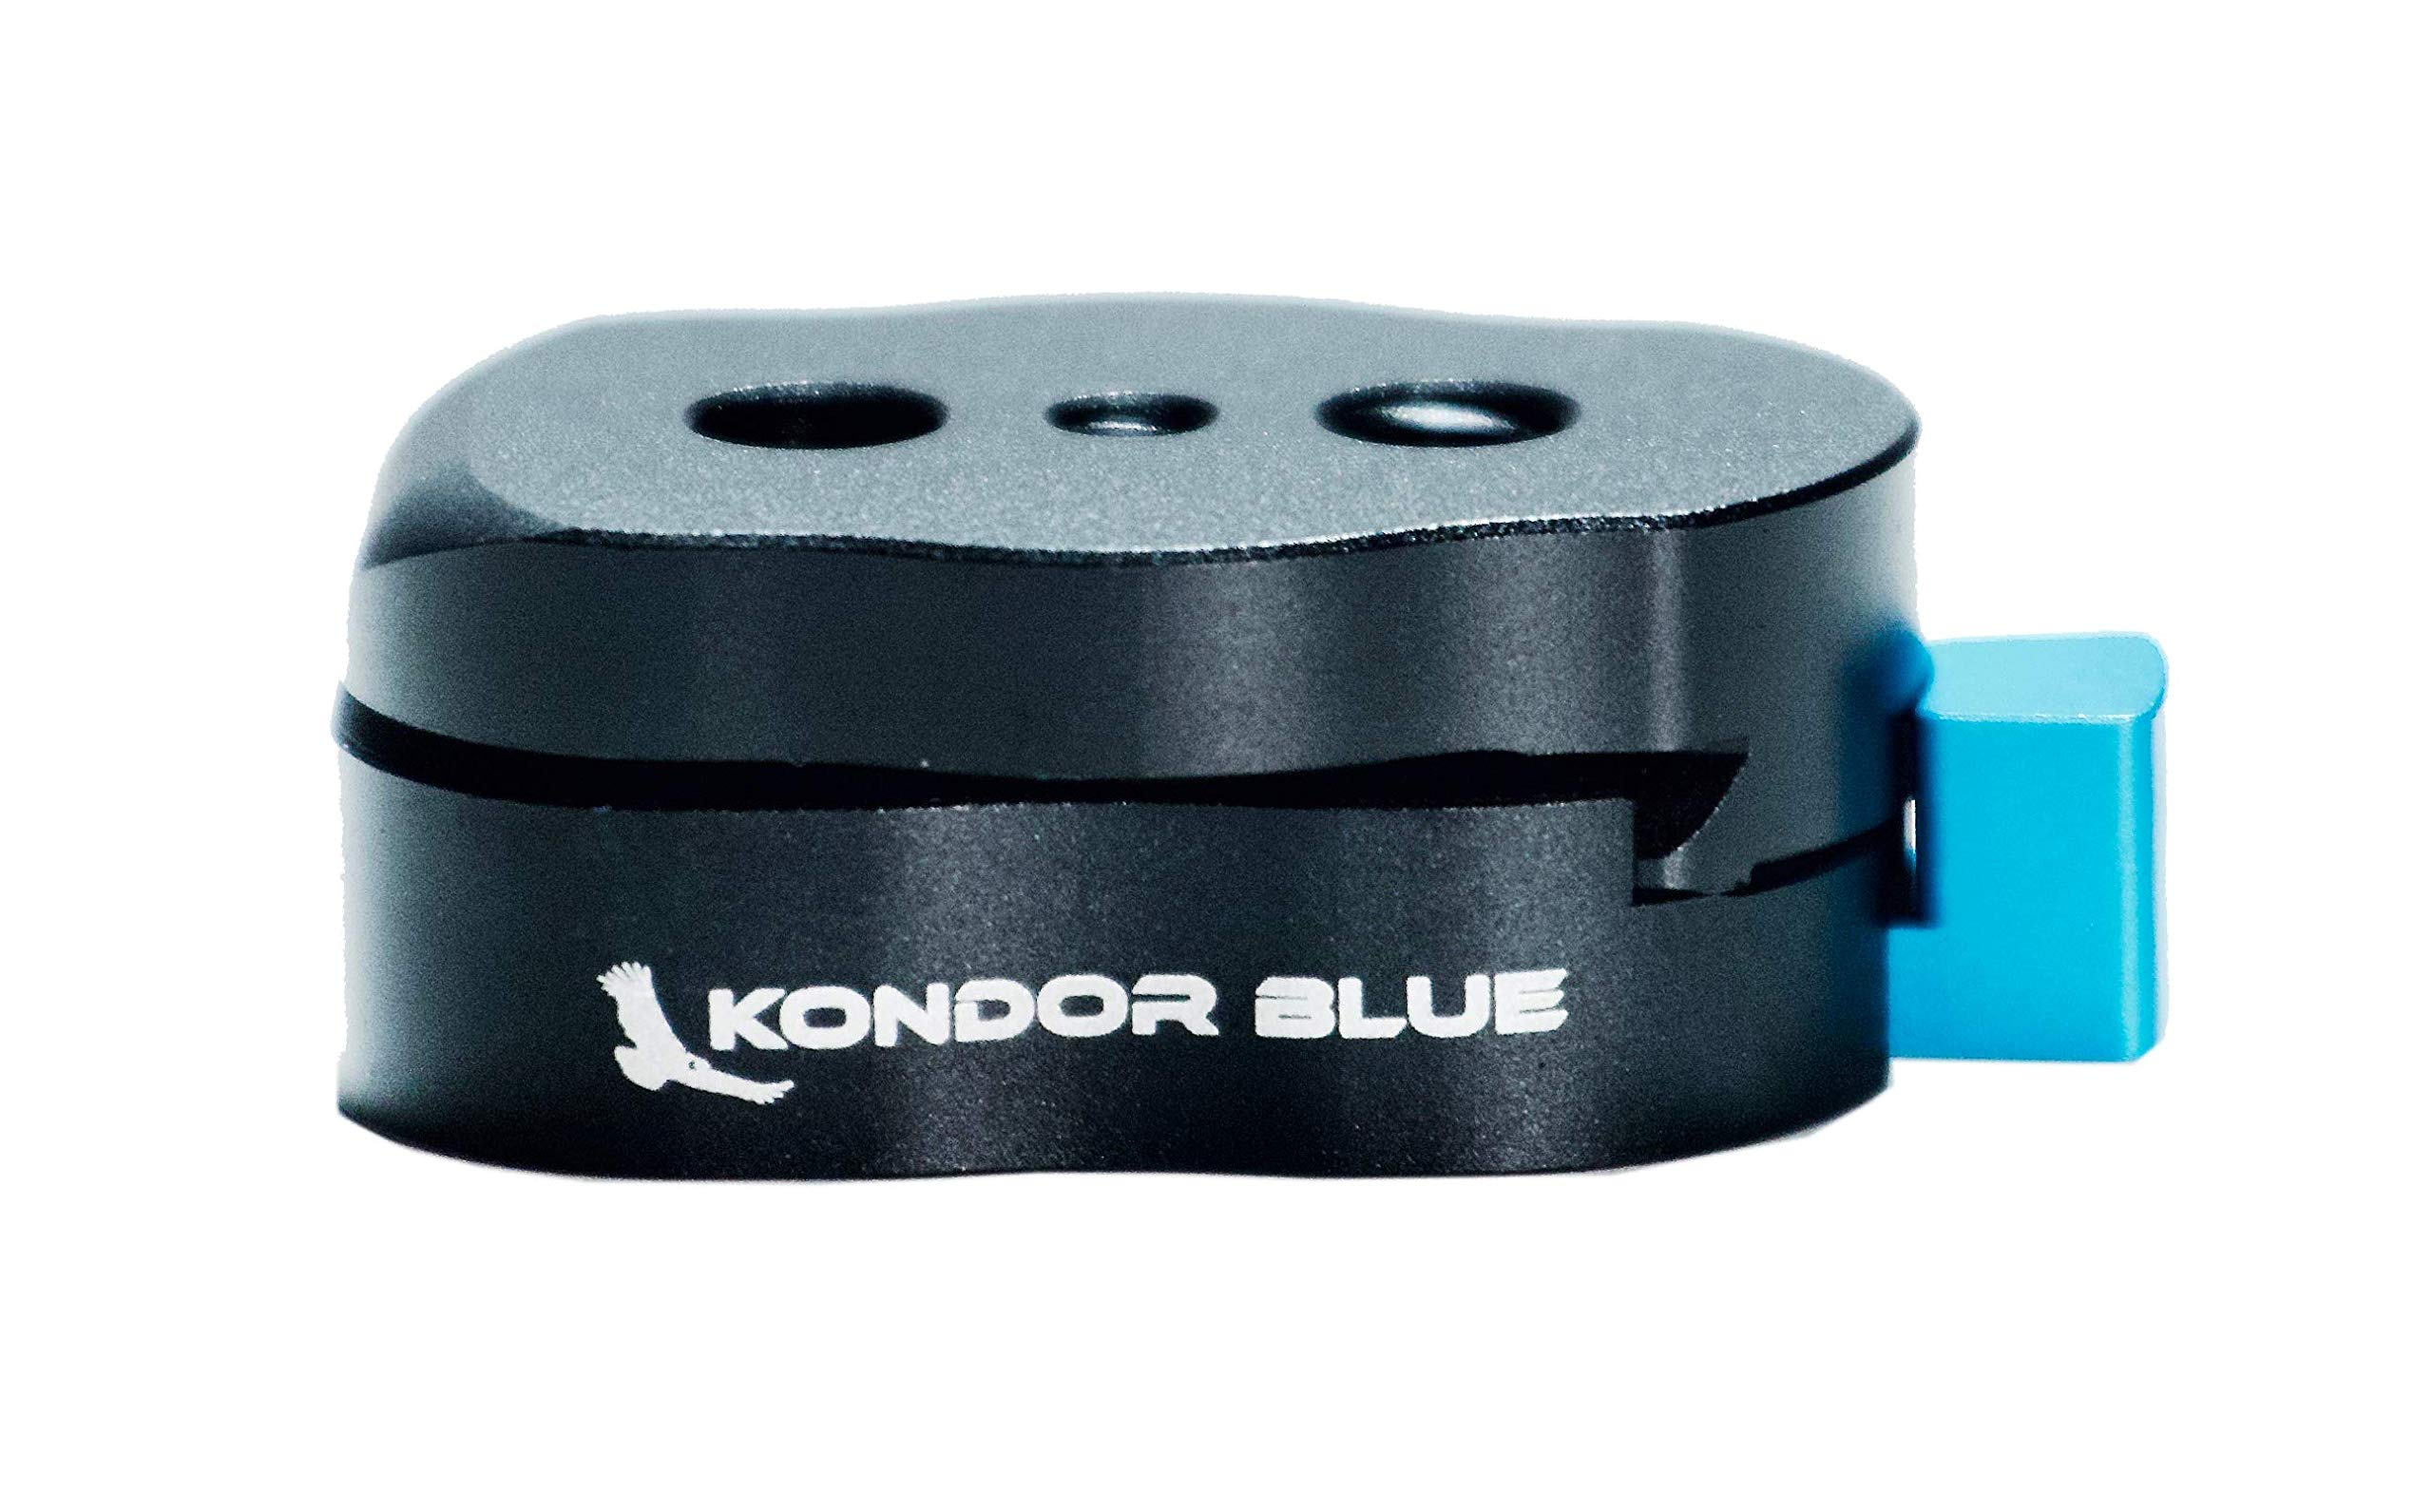 KONDOR BLUE Mini Quick Release Plate LCD Monitors, Magic Arm, LED Light, EVF Mounts, Monitor, Microphones, Recorders, Flash, Gimbals More (Strong Cine Lock)